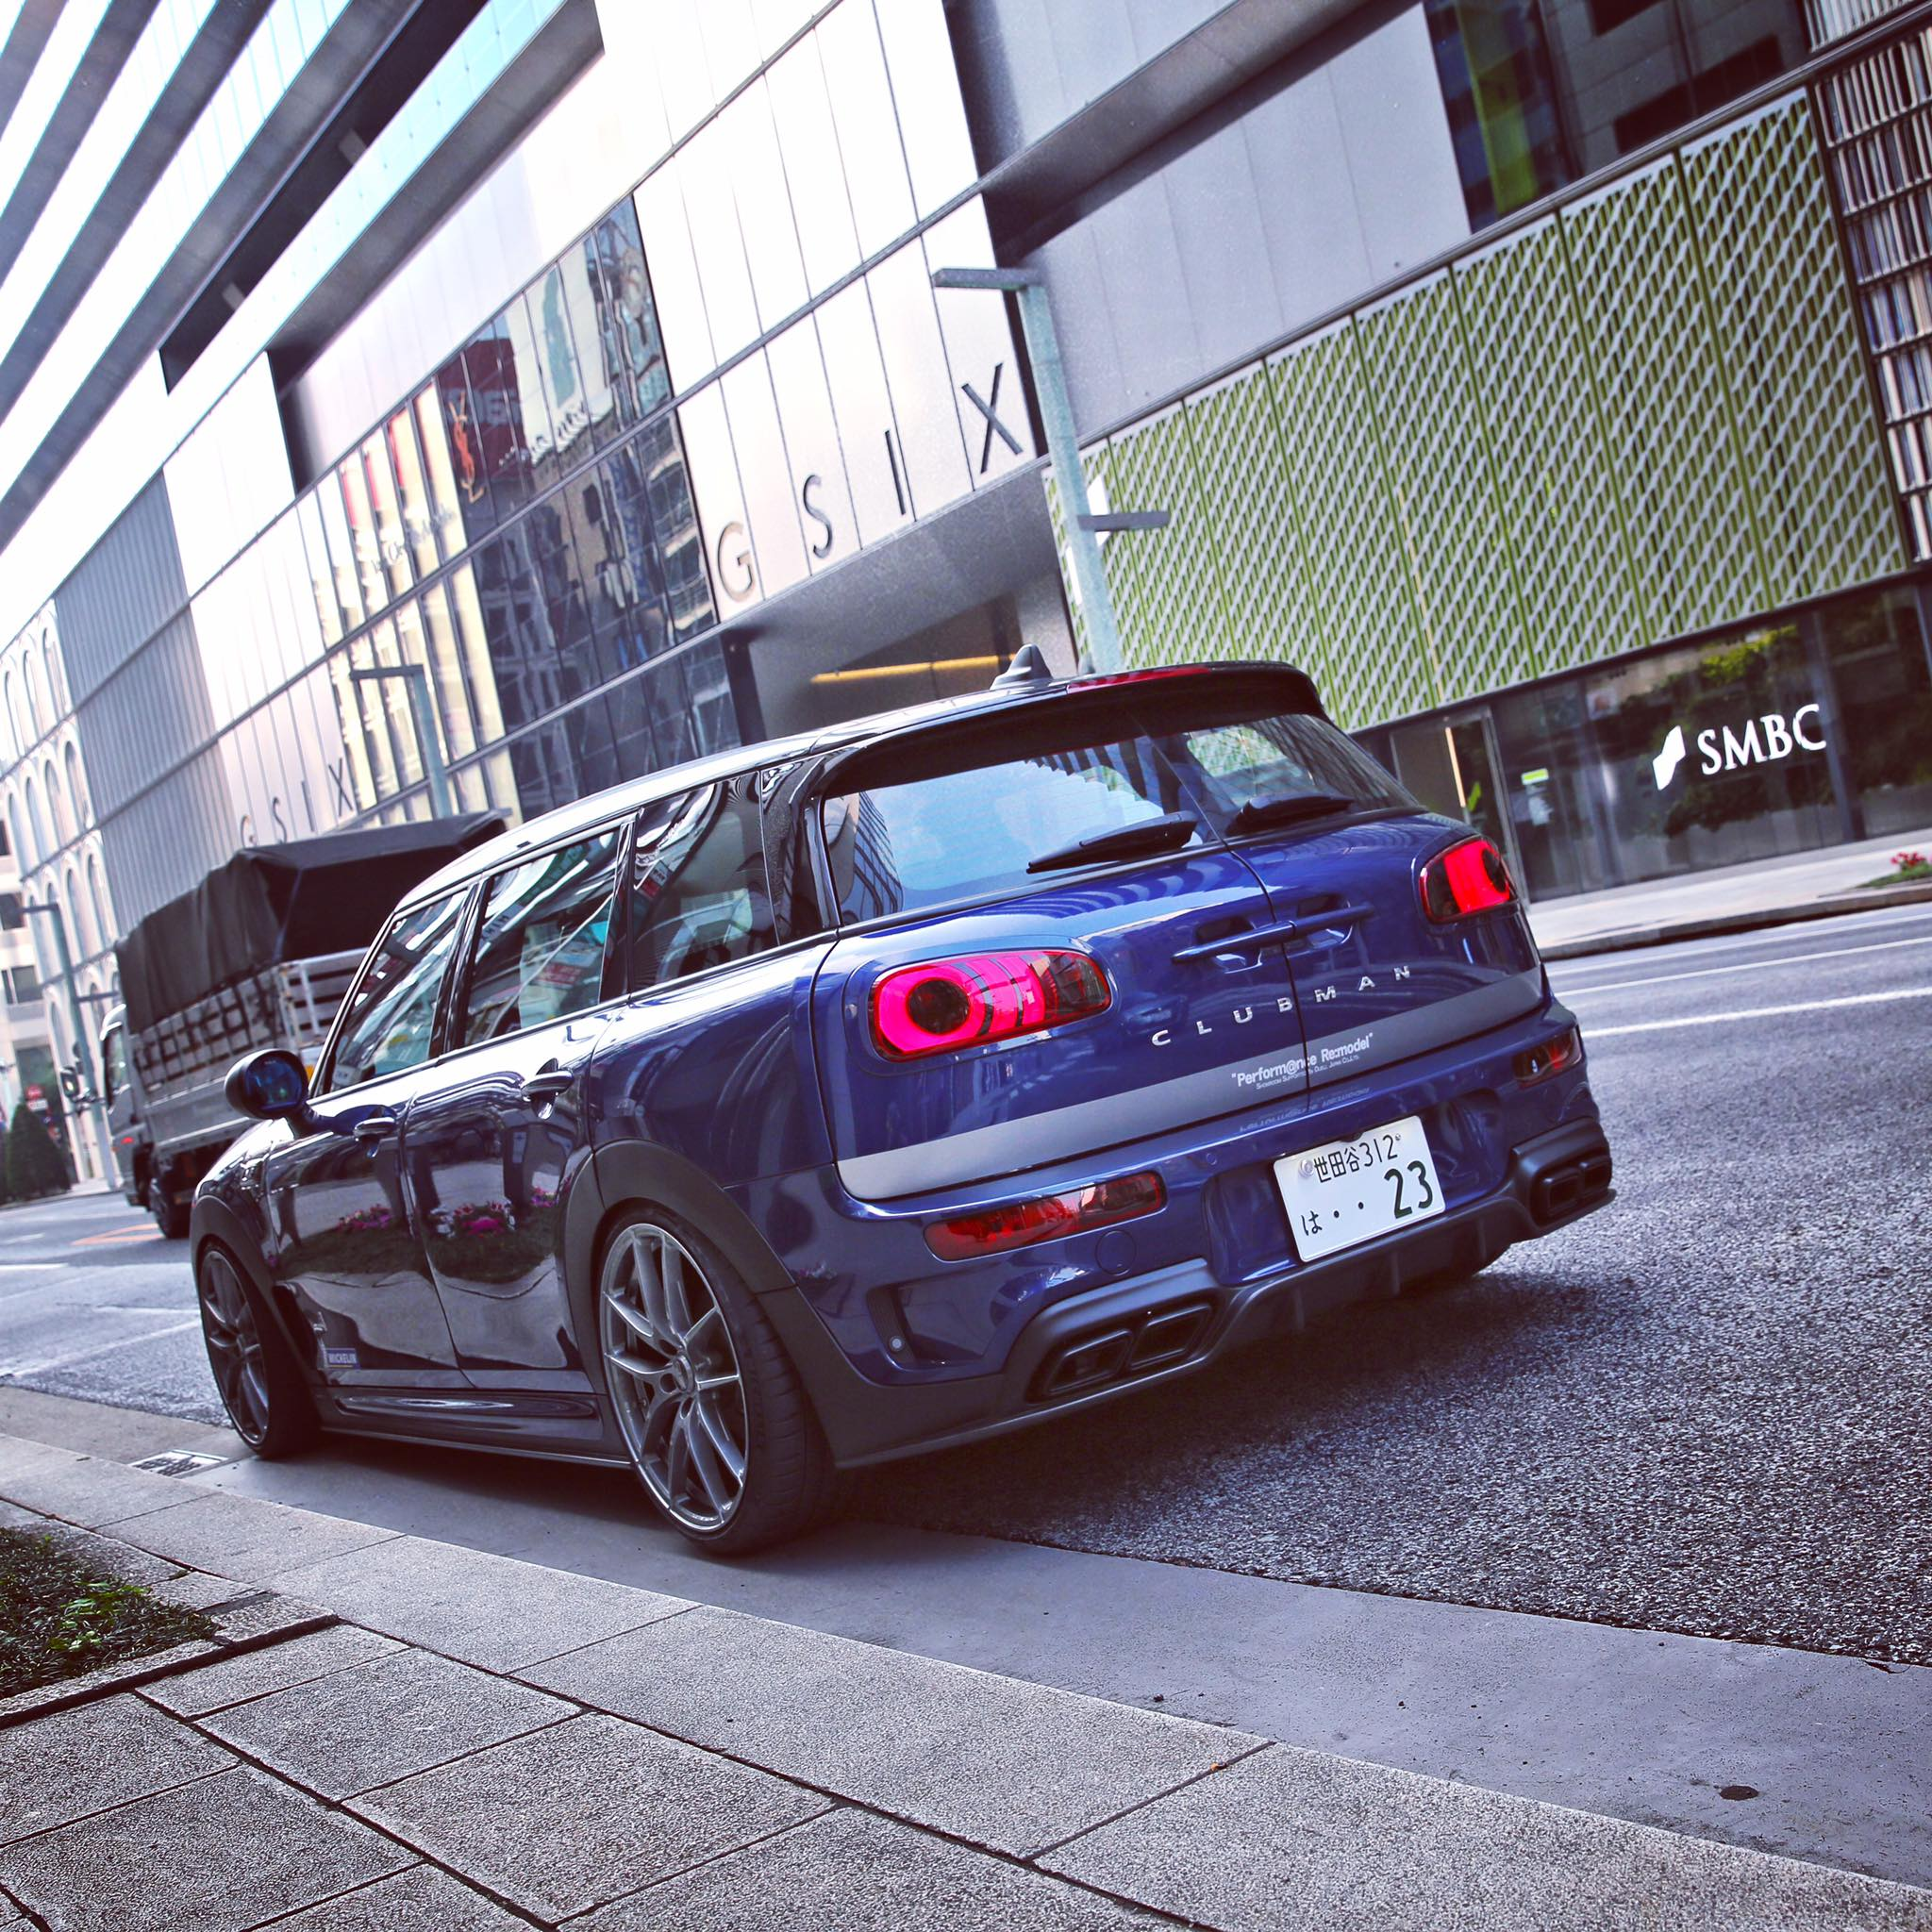 Mini Clubman Gets Amg Exhaust And Body Kit In Japanese Tuning